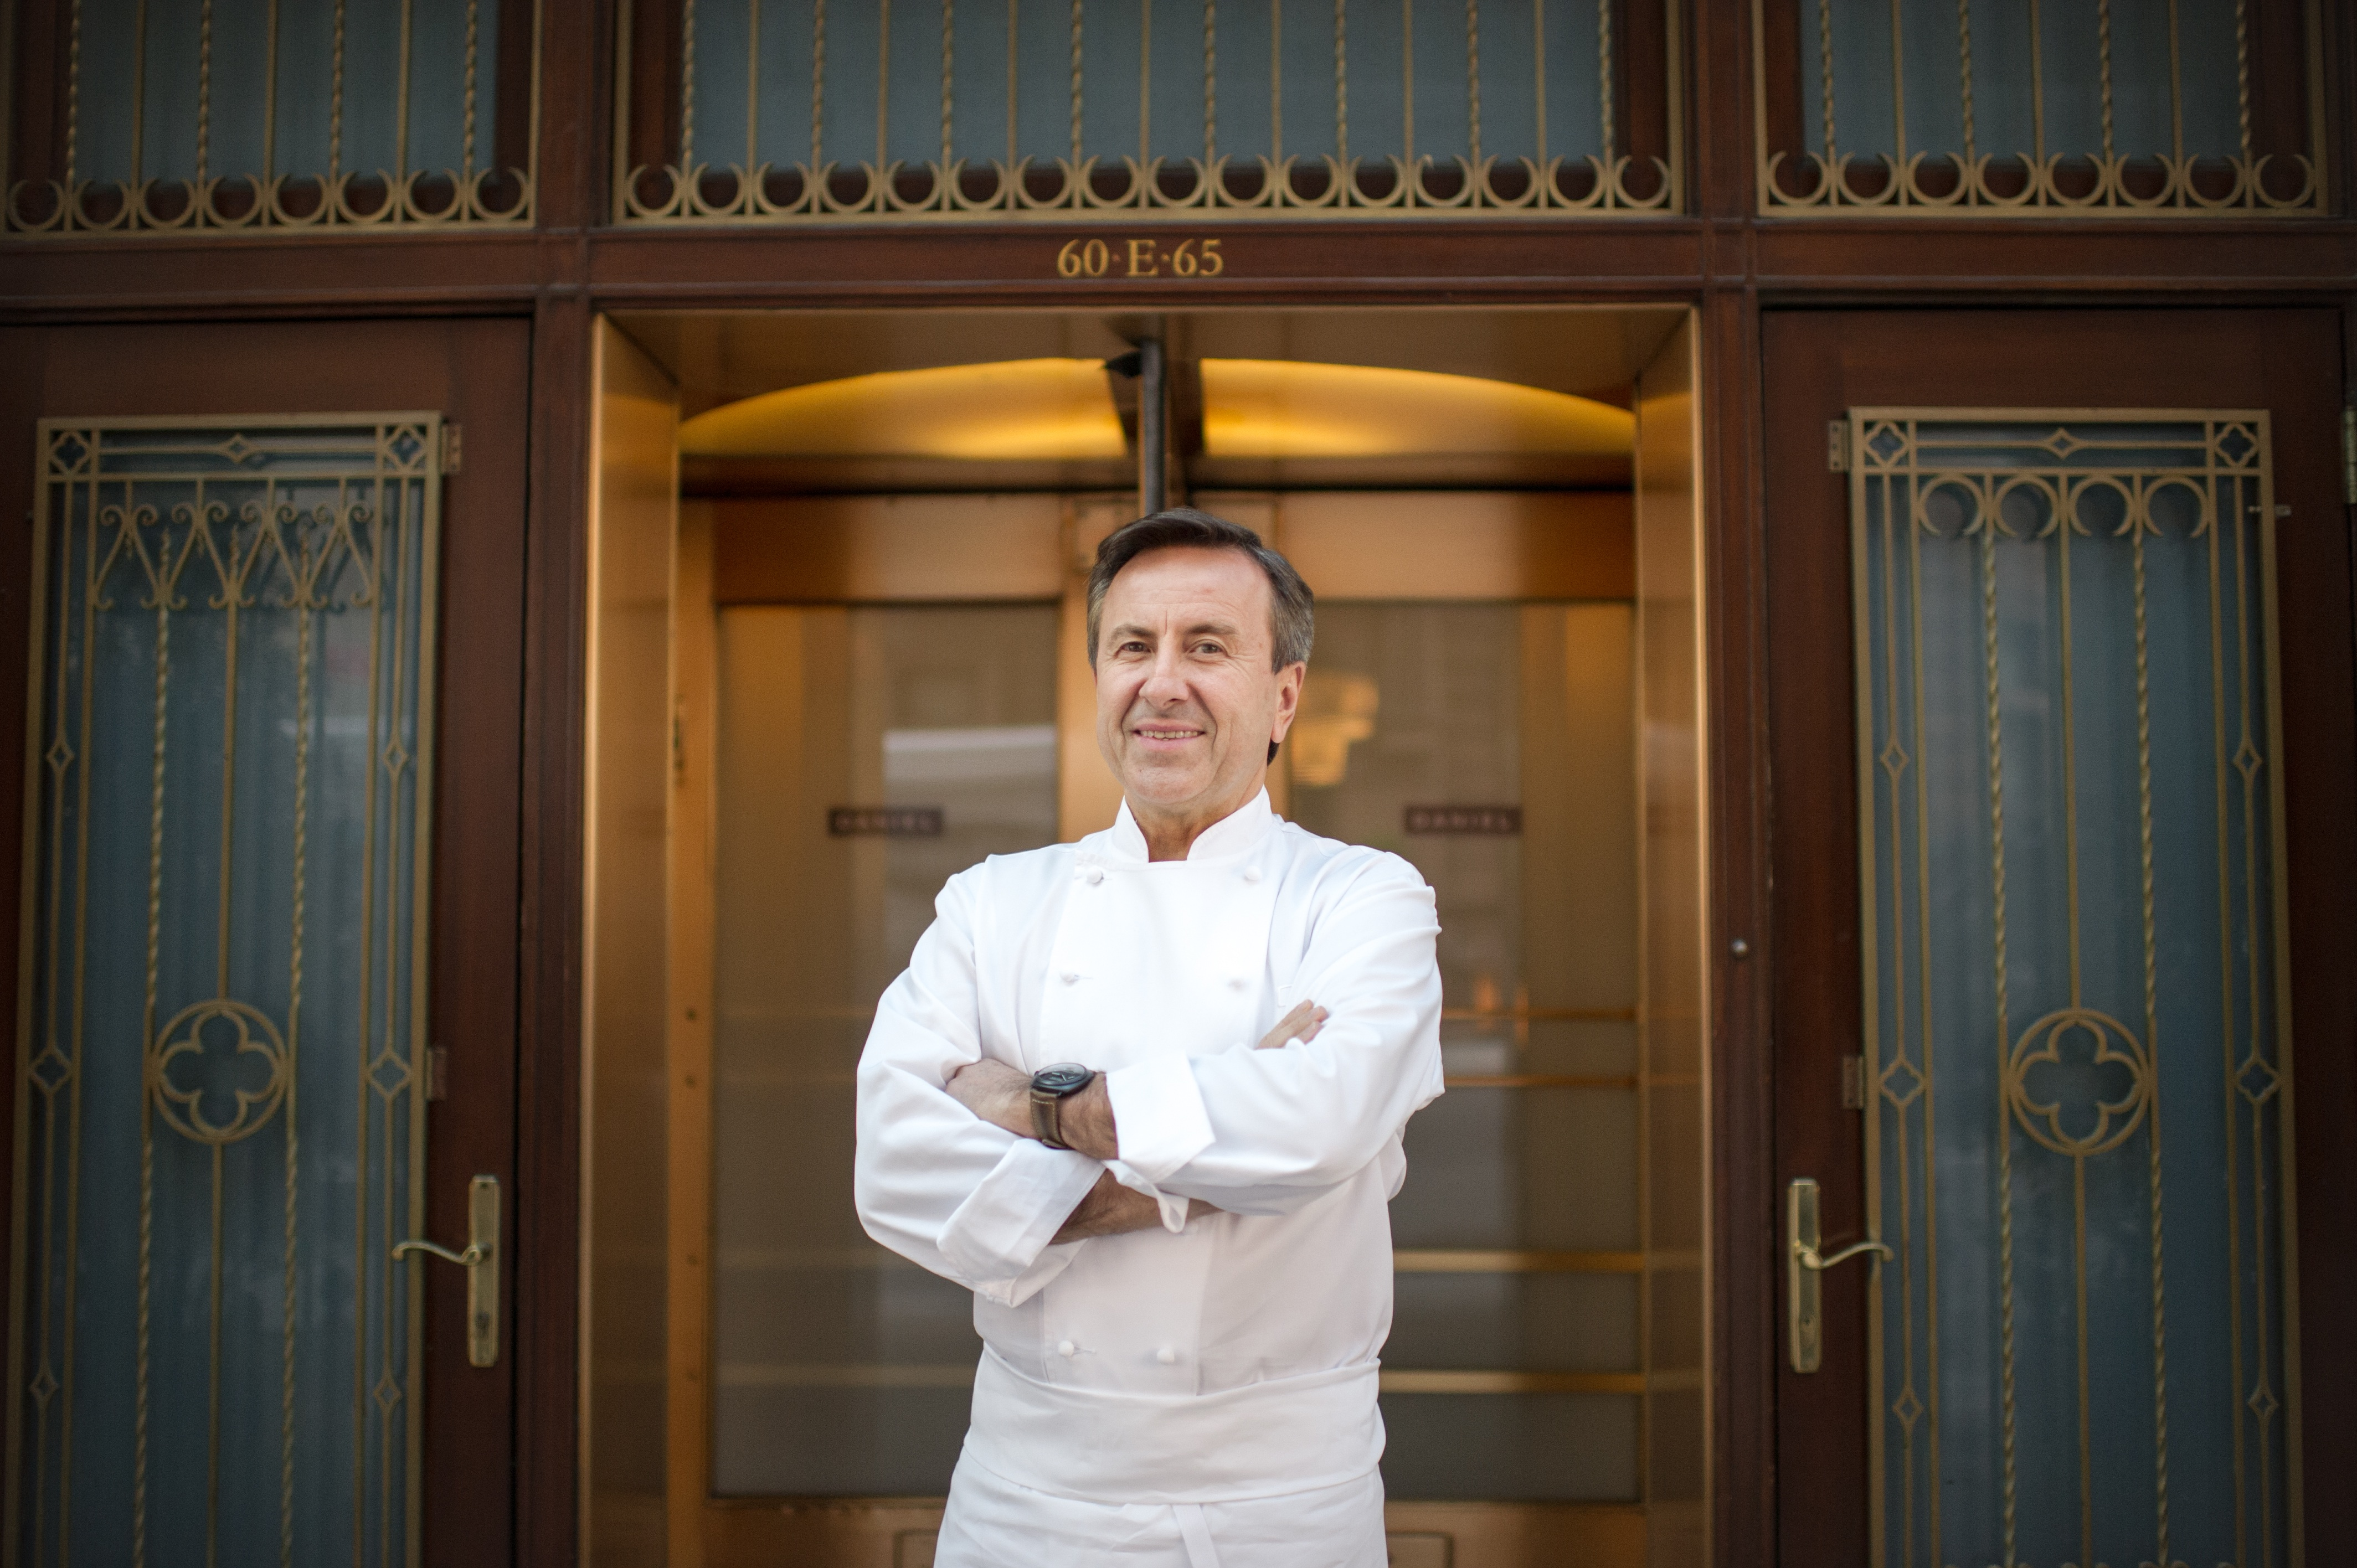 Image courtesy em the baker this image is for representation purpose - Chef Daniel Boulud Insights From The Kitchen And Beyond